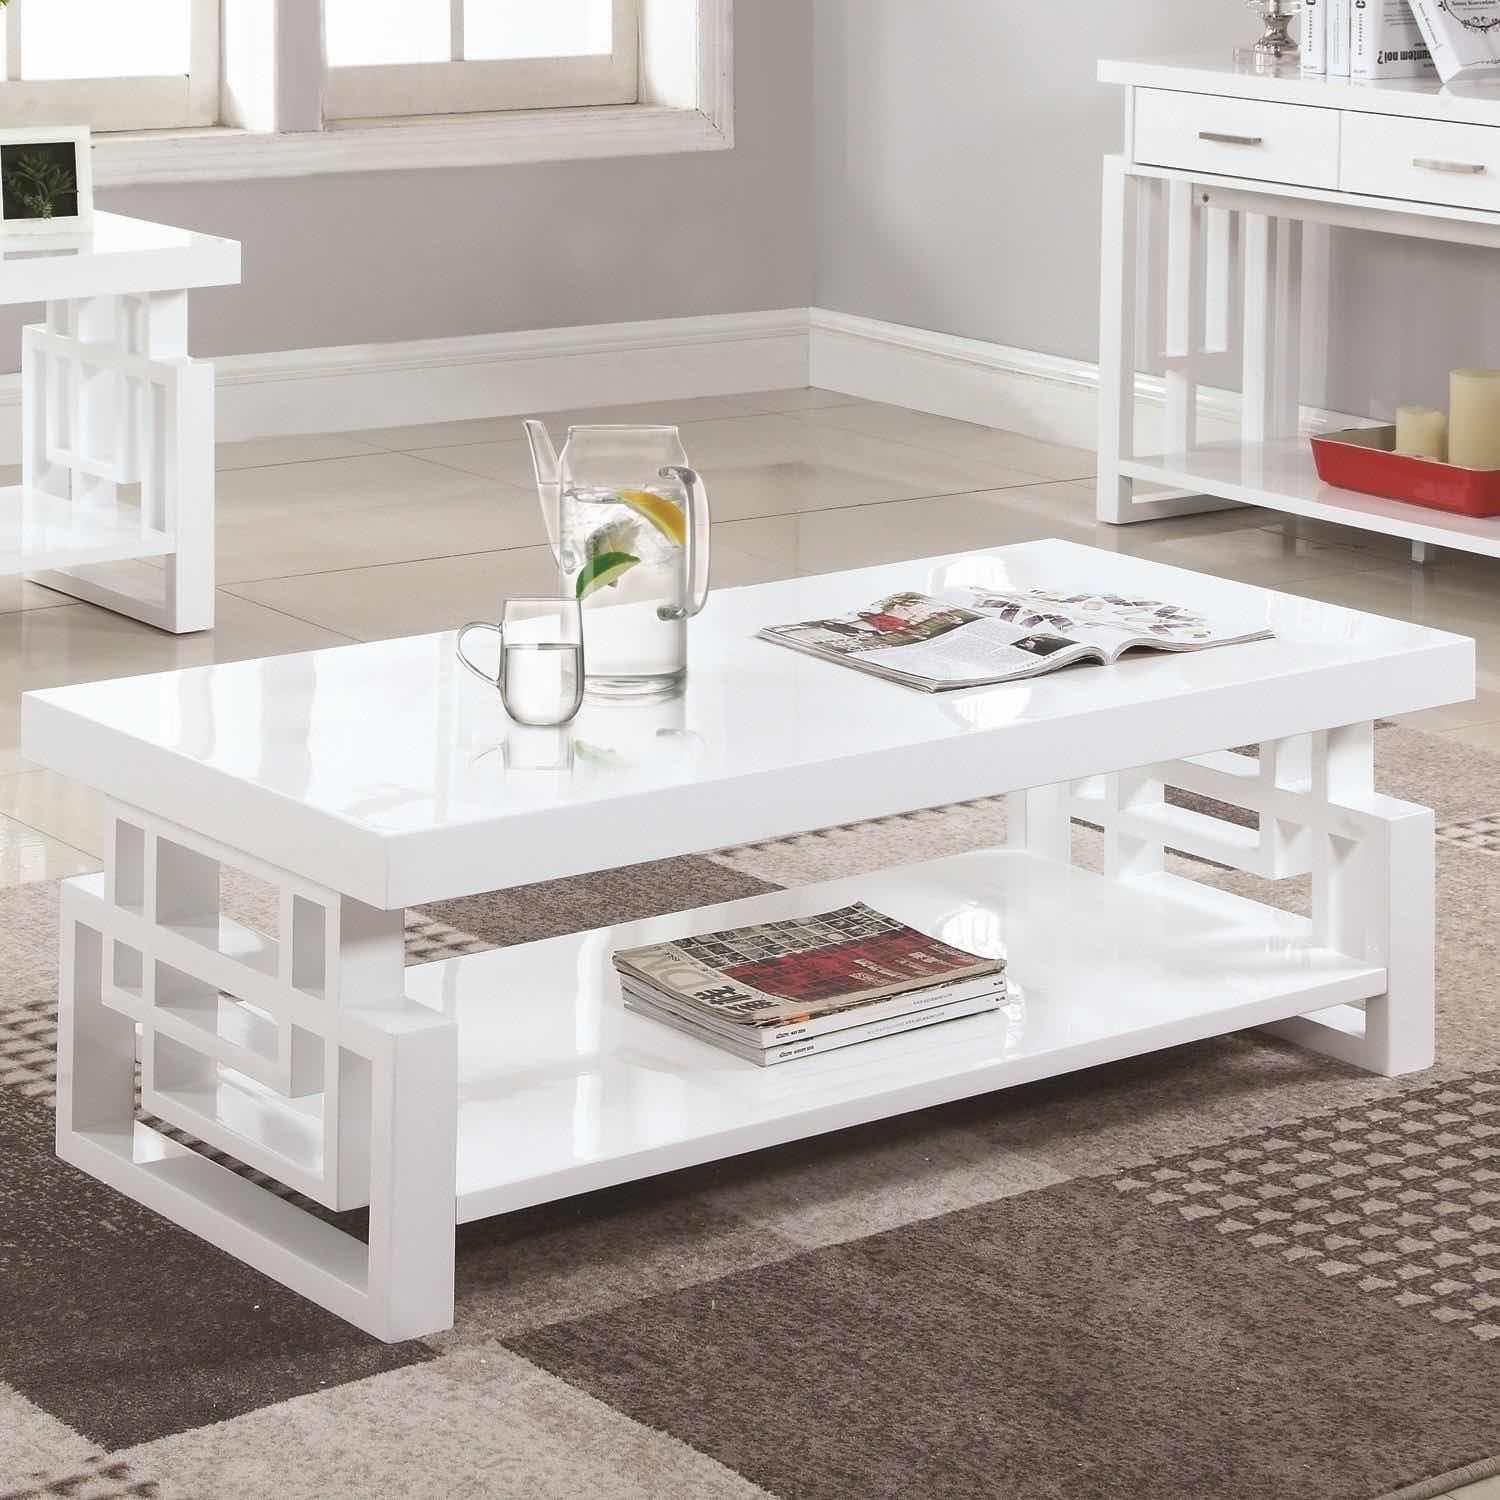 - Rectangular Contemporary Coffee Table